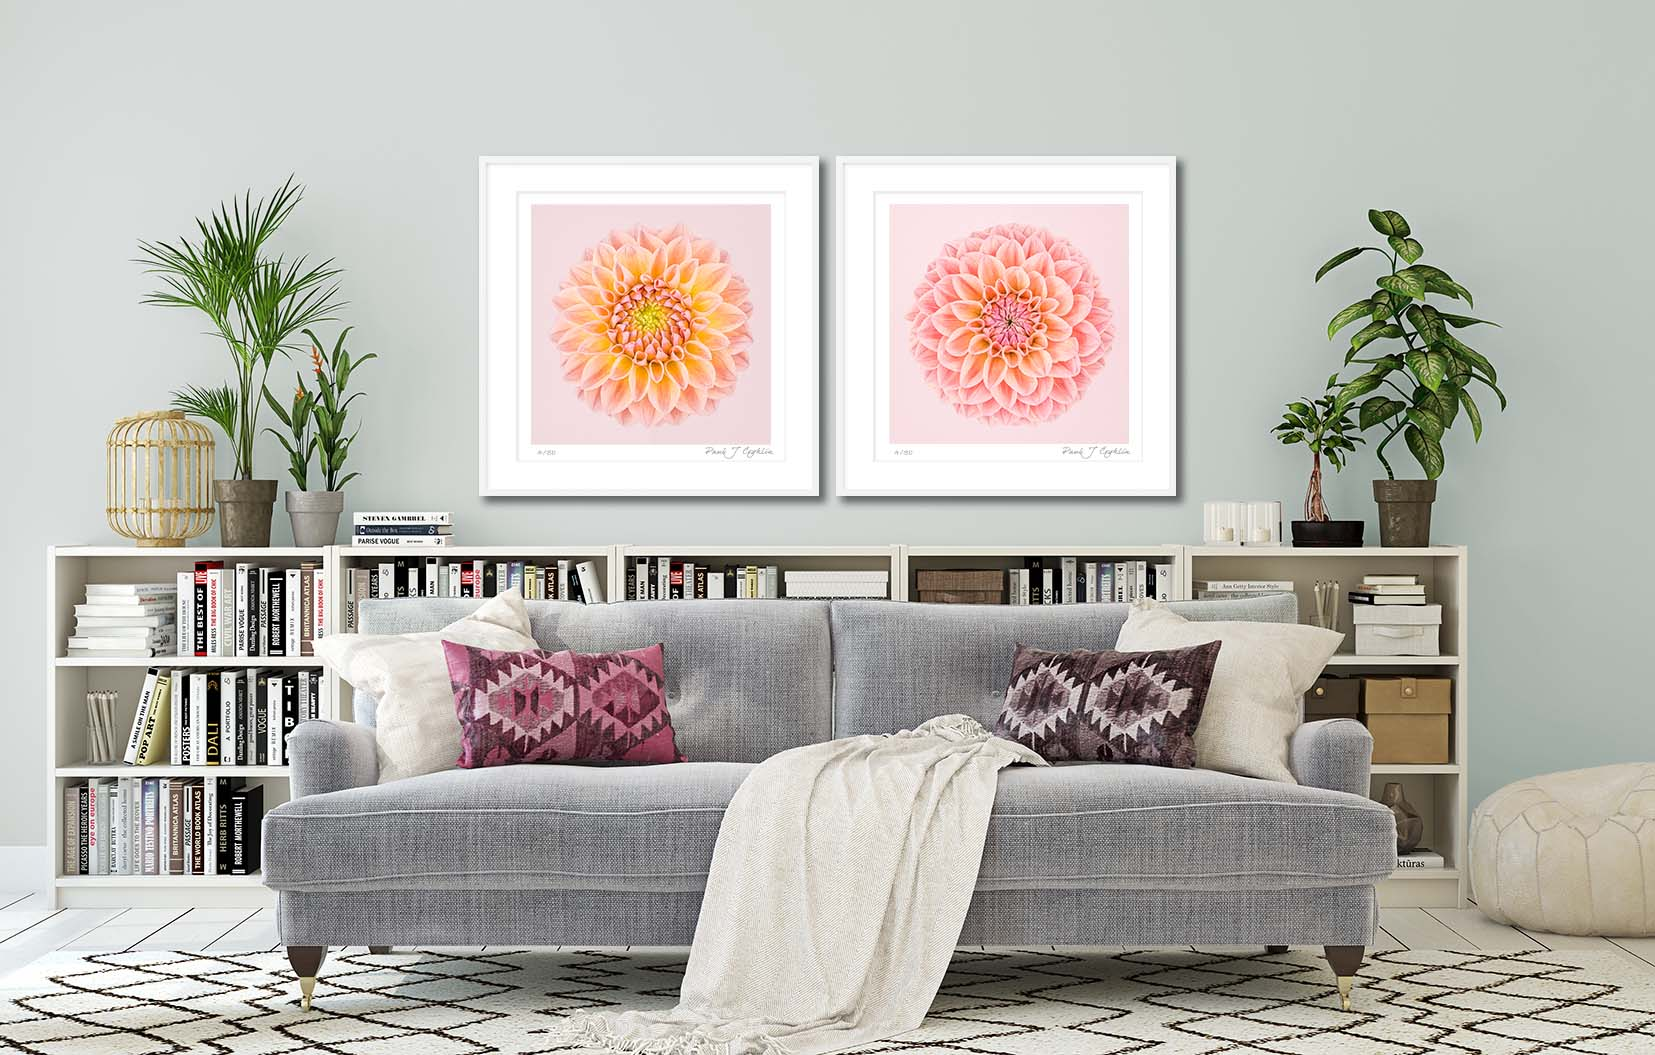 Pink and Yellow Dahlia Circle I. Limited edition fine art print of a pink and yellow dahlia. Botanical prints and floral studies by fine art photographer Paul Coghlin.